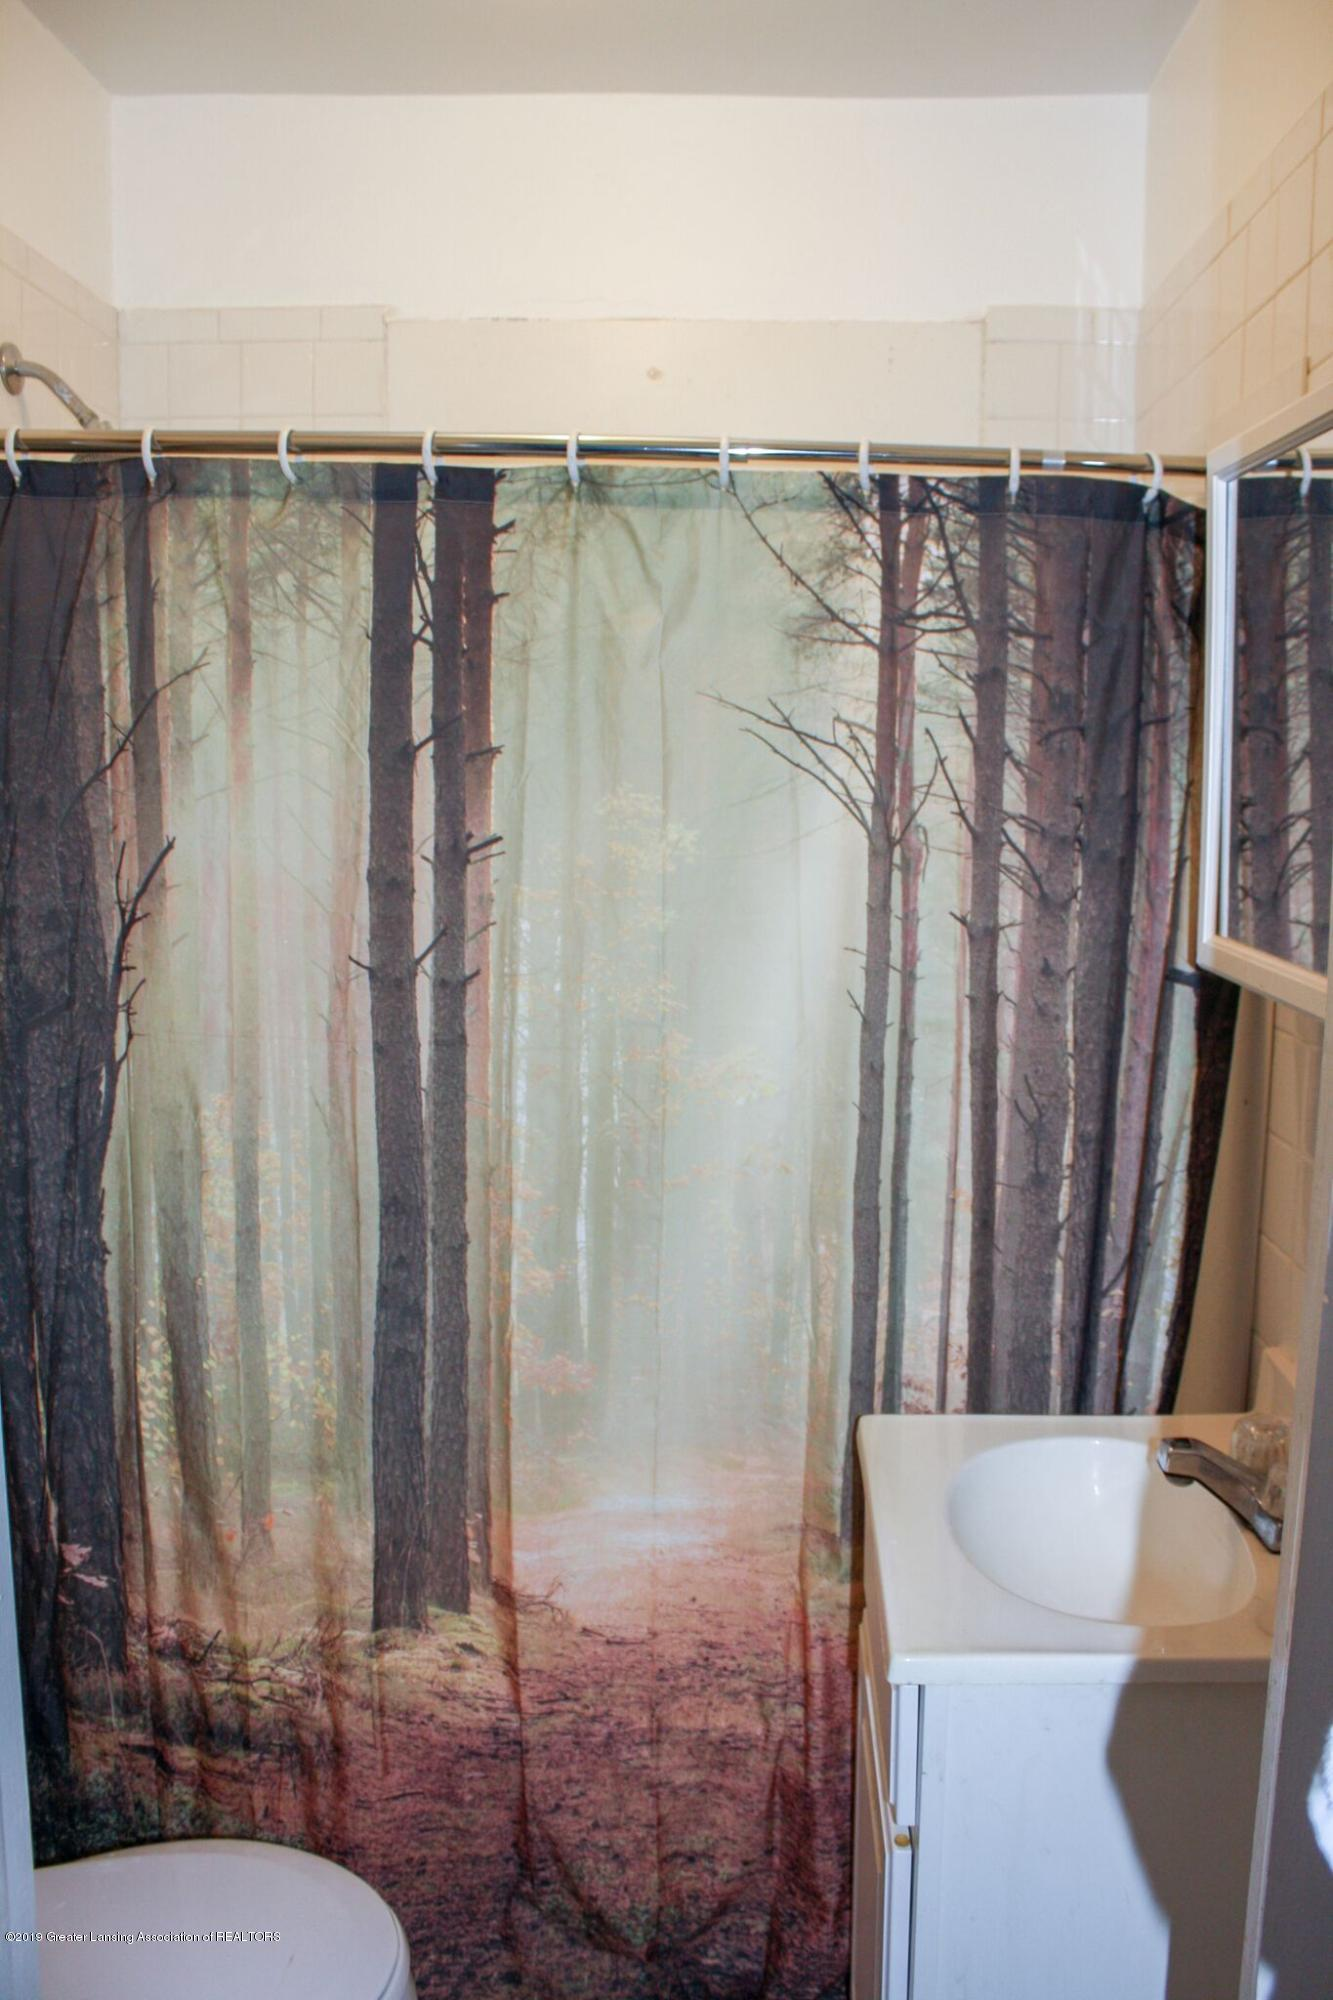 831 N Hagadorn Rd - Bathroom - 12